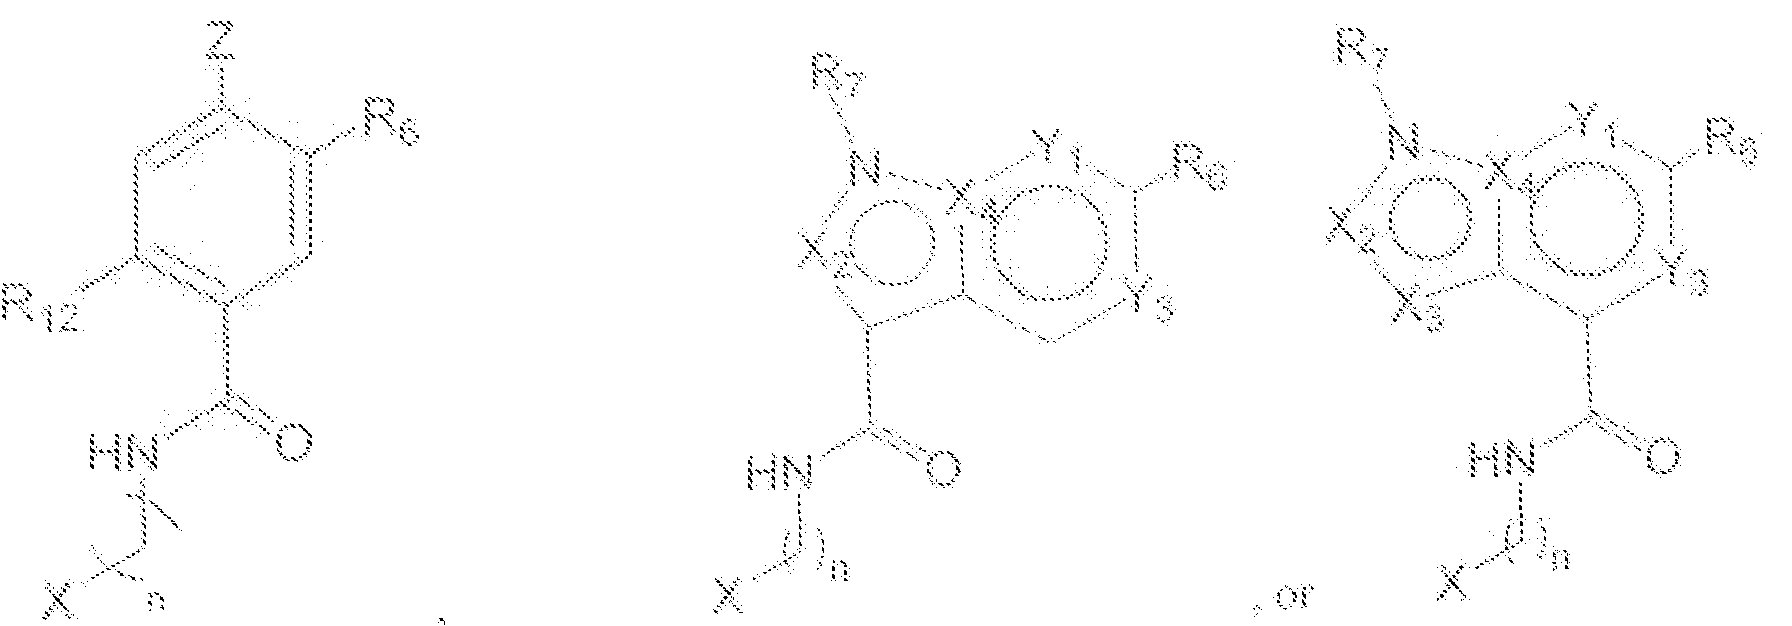 WO2015200650A1 - Substituted benzene and 6,5-fused bicyclic